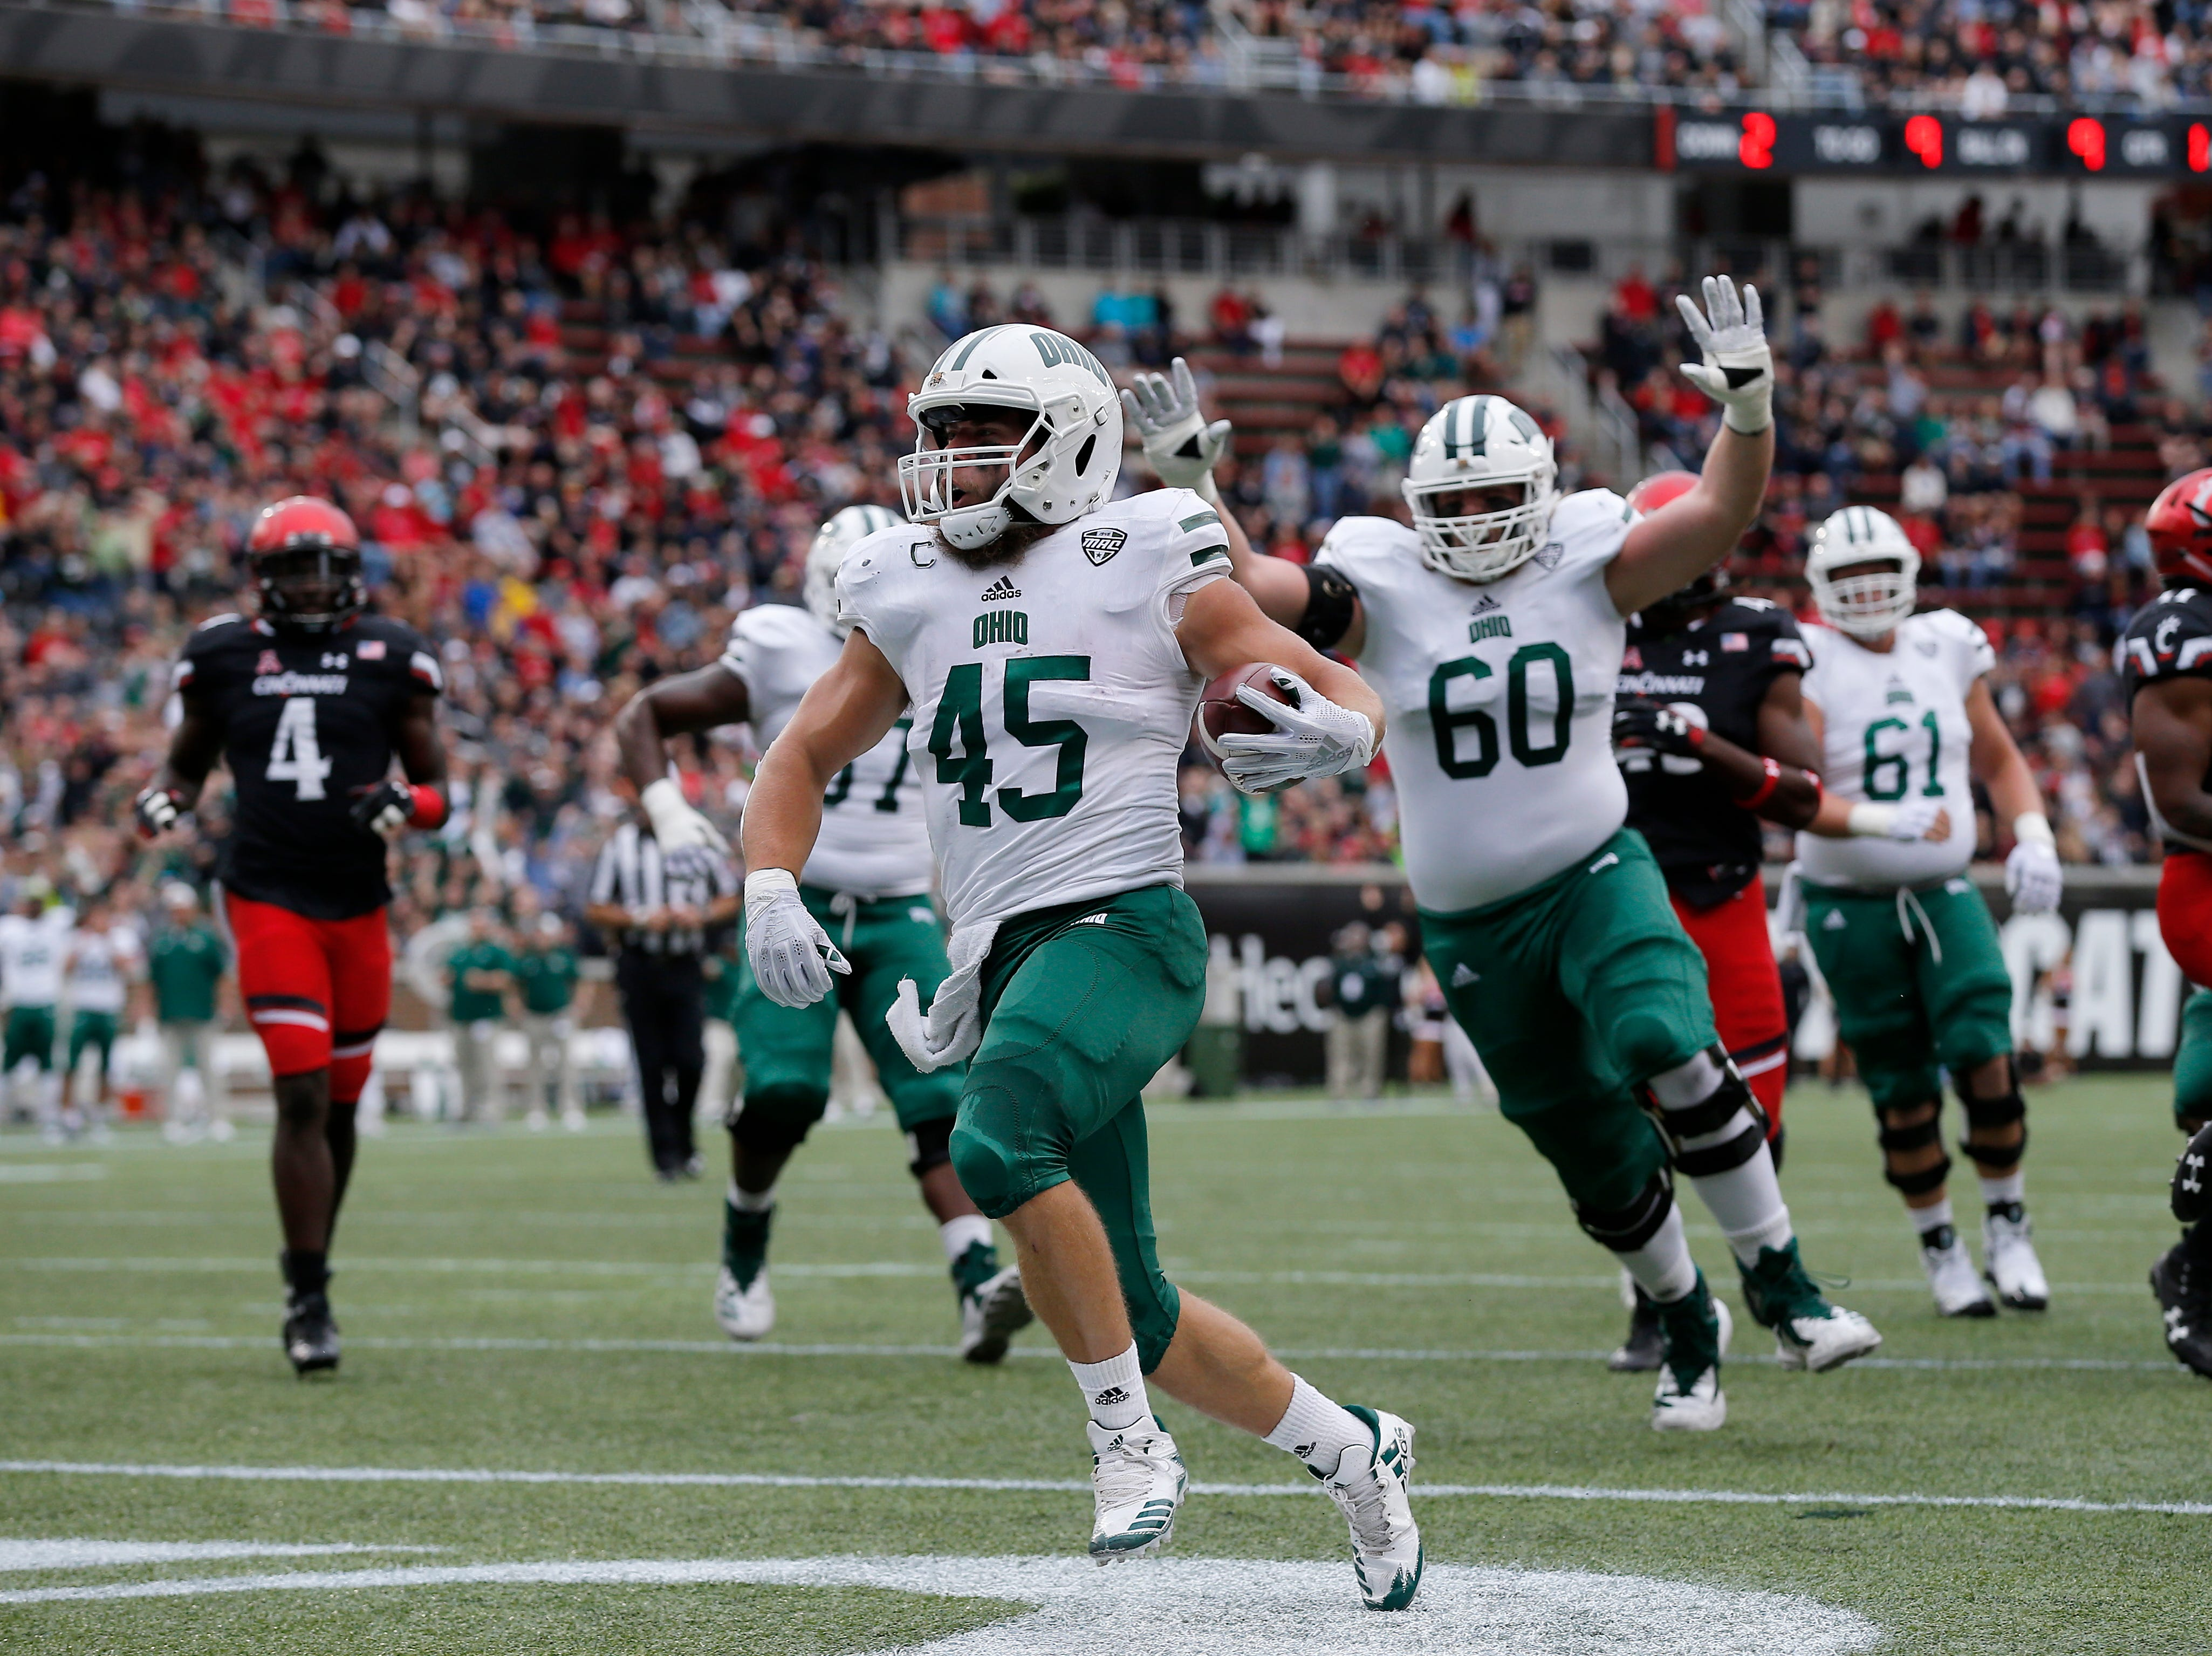 Ohio Bobcats running back A.J. Ouellette (45) runs in a carry for a touchdown in the first quarter of the NCAA football game between the Cincinnati Bearcats and the Ohio Bobcats at Nippert Stadium on the University of Cincinnati campus in Cincinnati on Saturday, Sept. 22, 2018. The Bobcats led 24-7 at halftime.